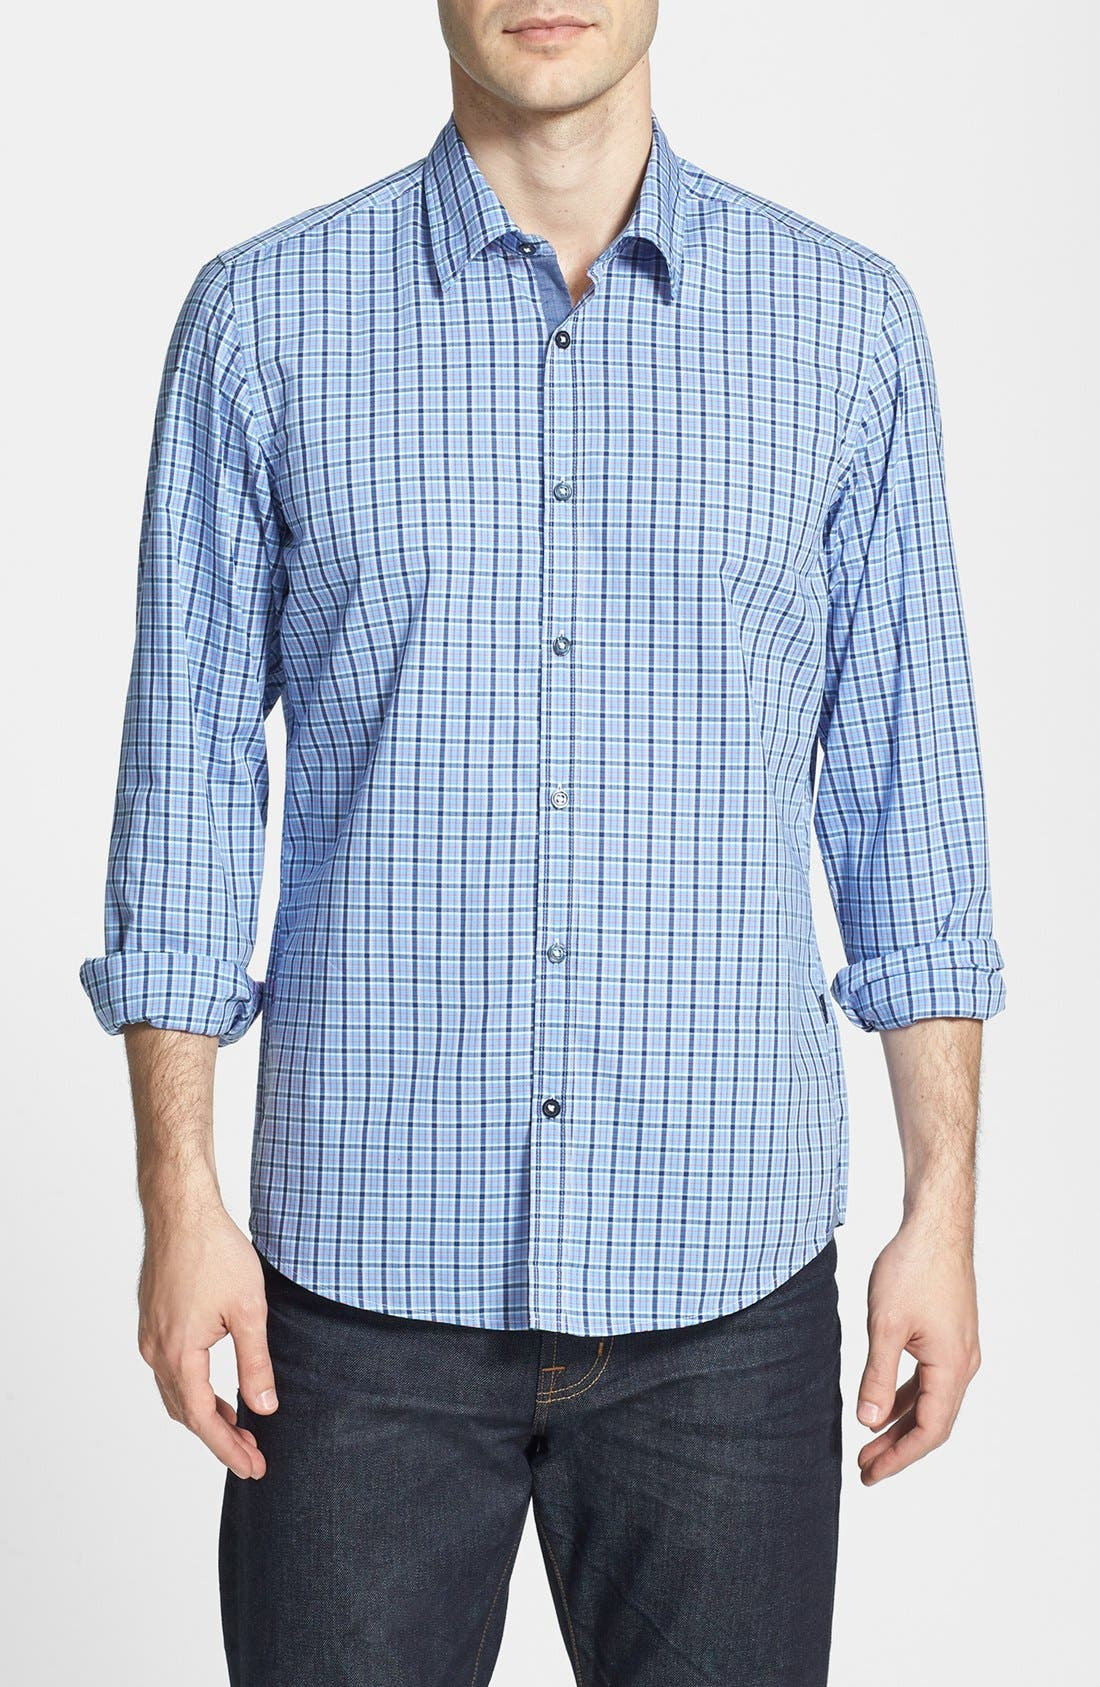 Main Image - BOSS HUGO BOSS 'Obert' Plaid Sport Shirt